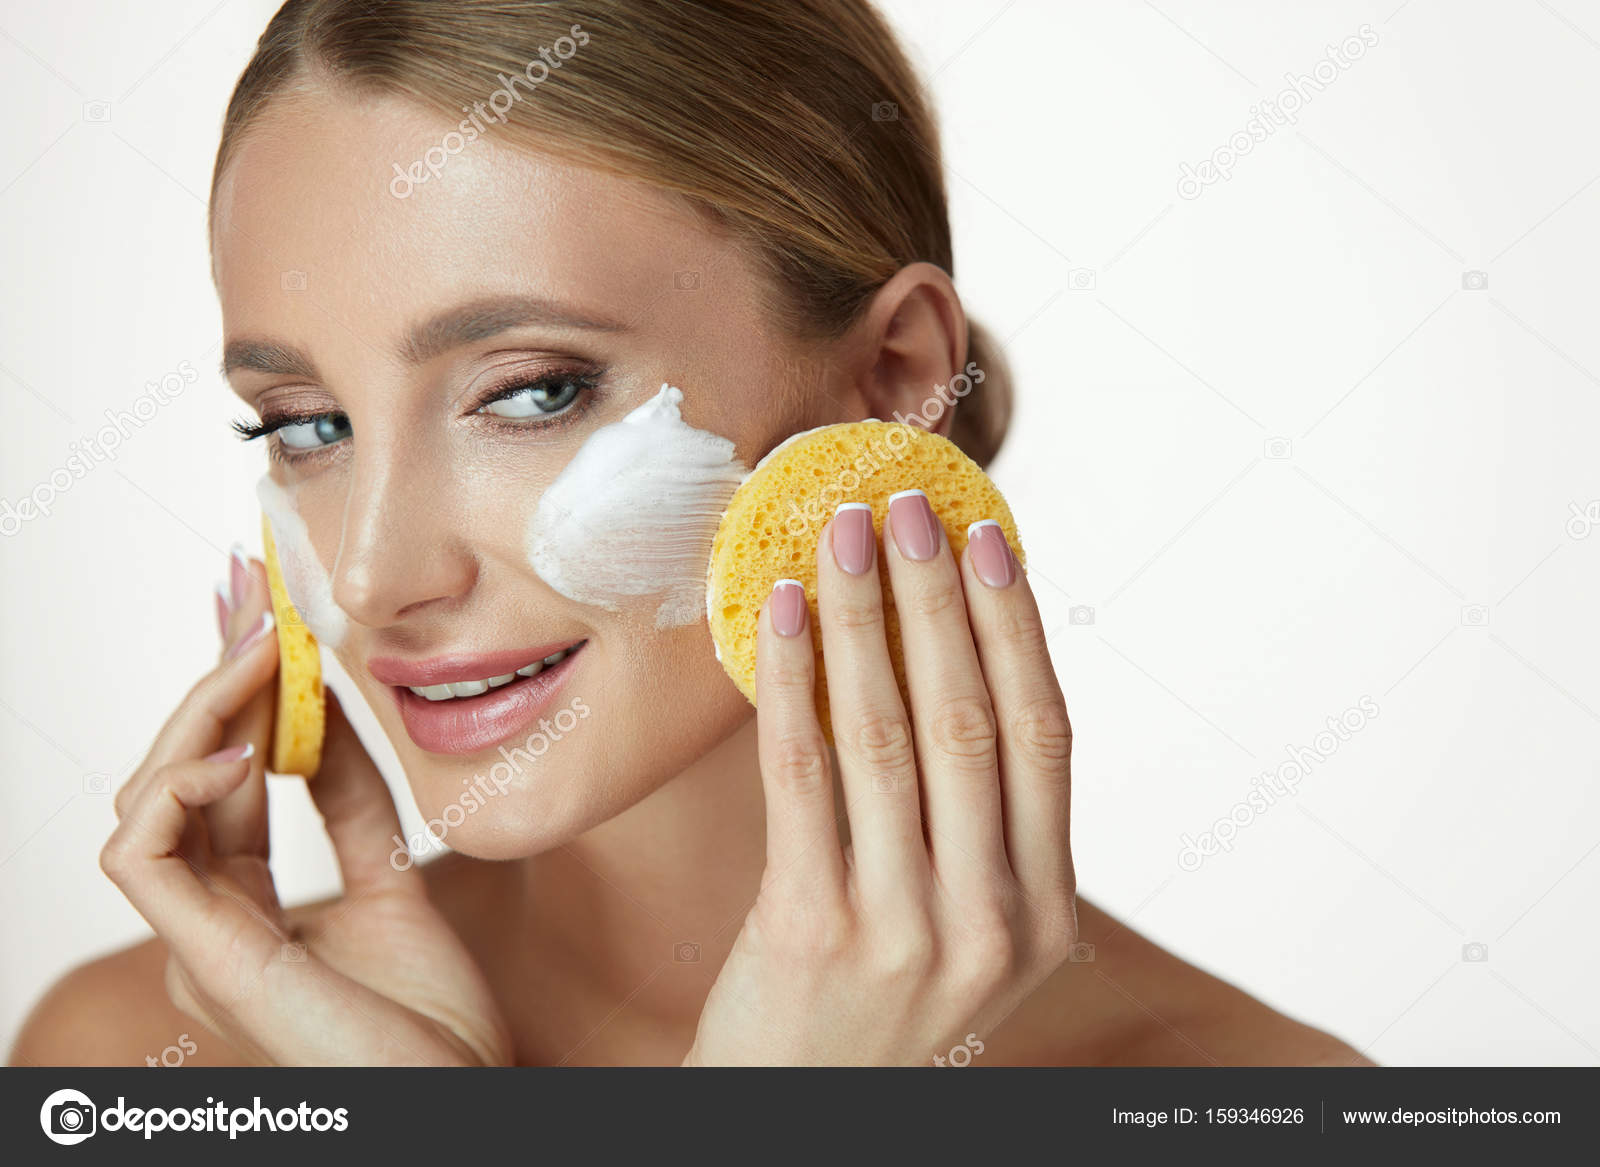 Face Skincare Beautiful Girl Cleaning Face With Soap And Sponge Stock Photo C Puhhha 159346926